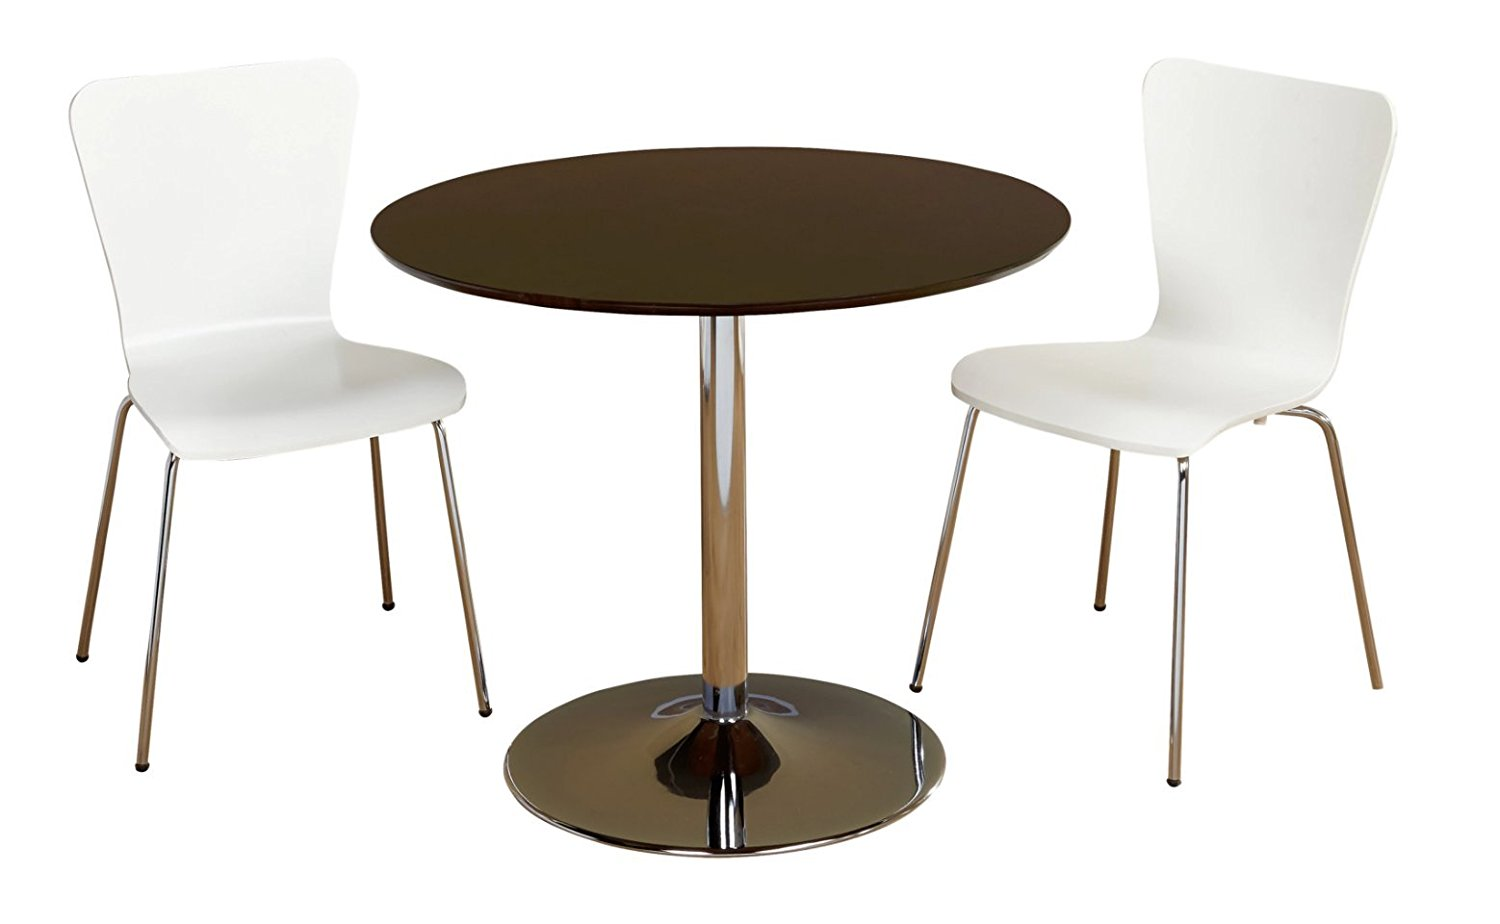 3 Piece Modern Dining Set With Brown Wood & Chrome Pedestal Base Displays Elegant Contemporary Feel. Includes 1 Round Table 2 White Stackable Chairs Great for Kitchen Small apartment dorm or loft